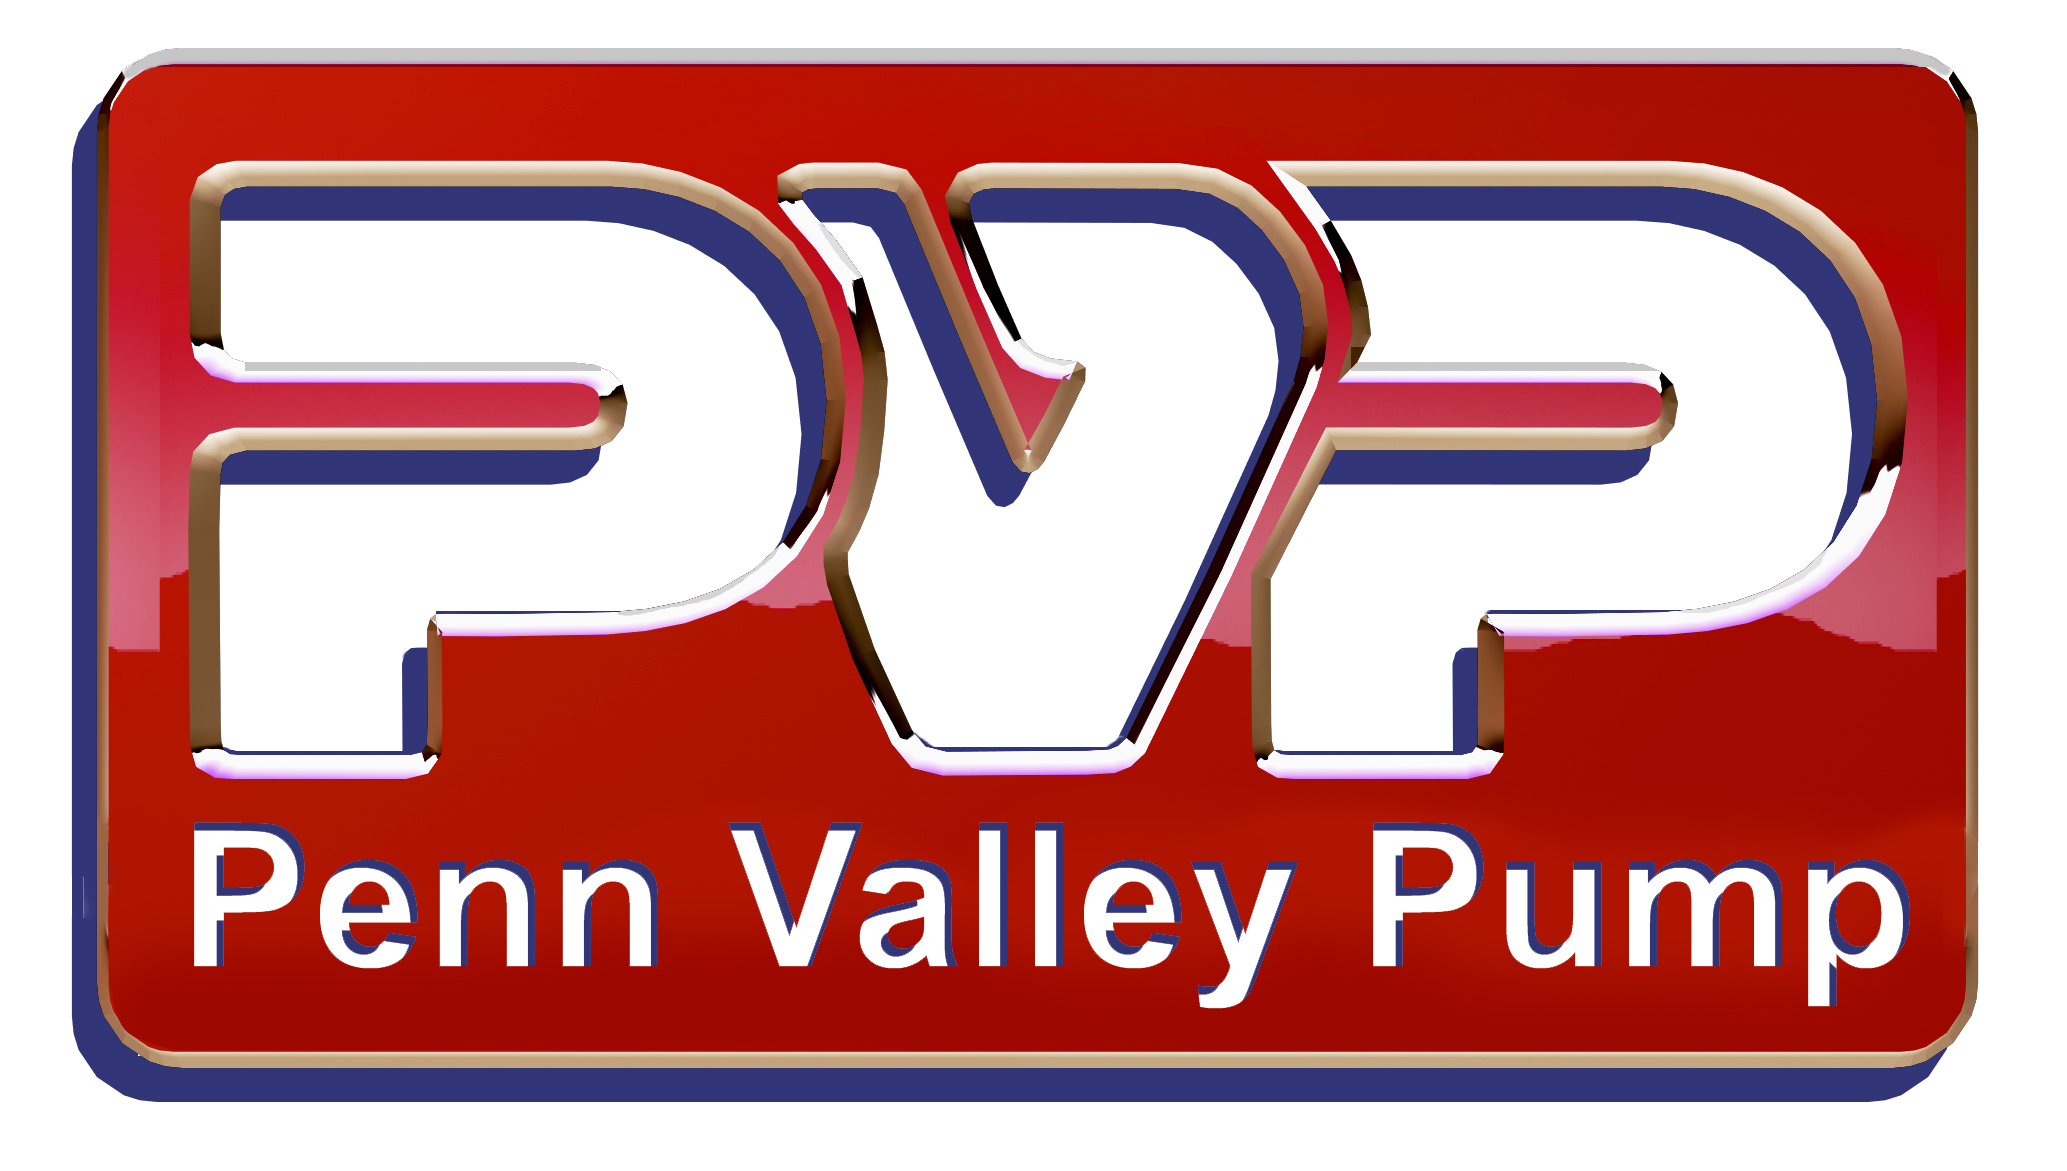 Penn Valley Pump Co., Inc.